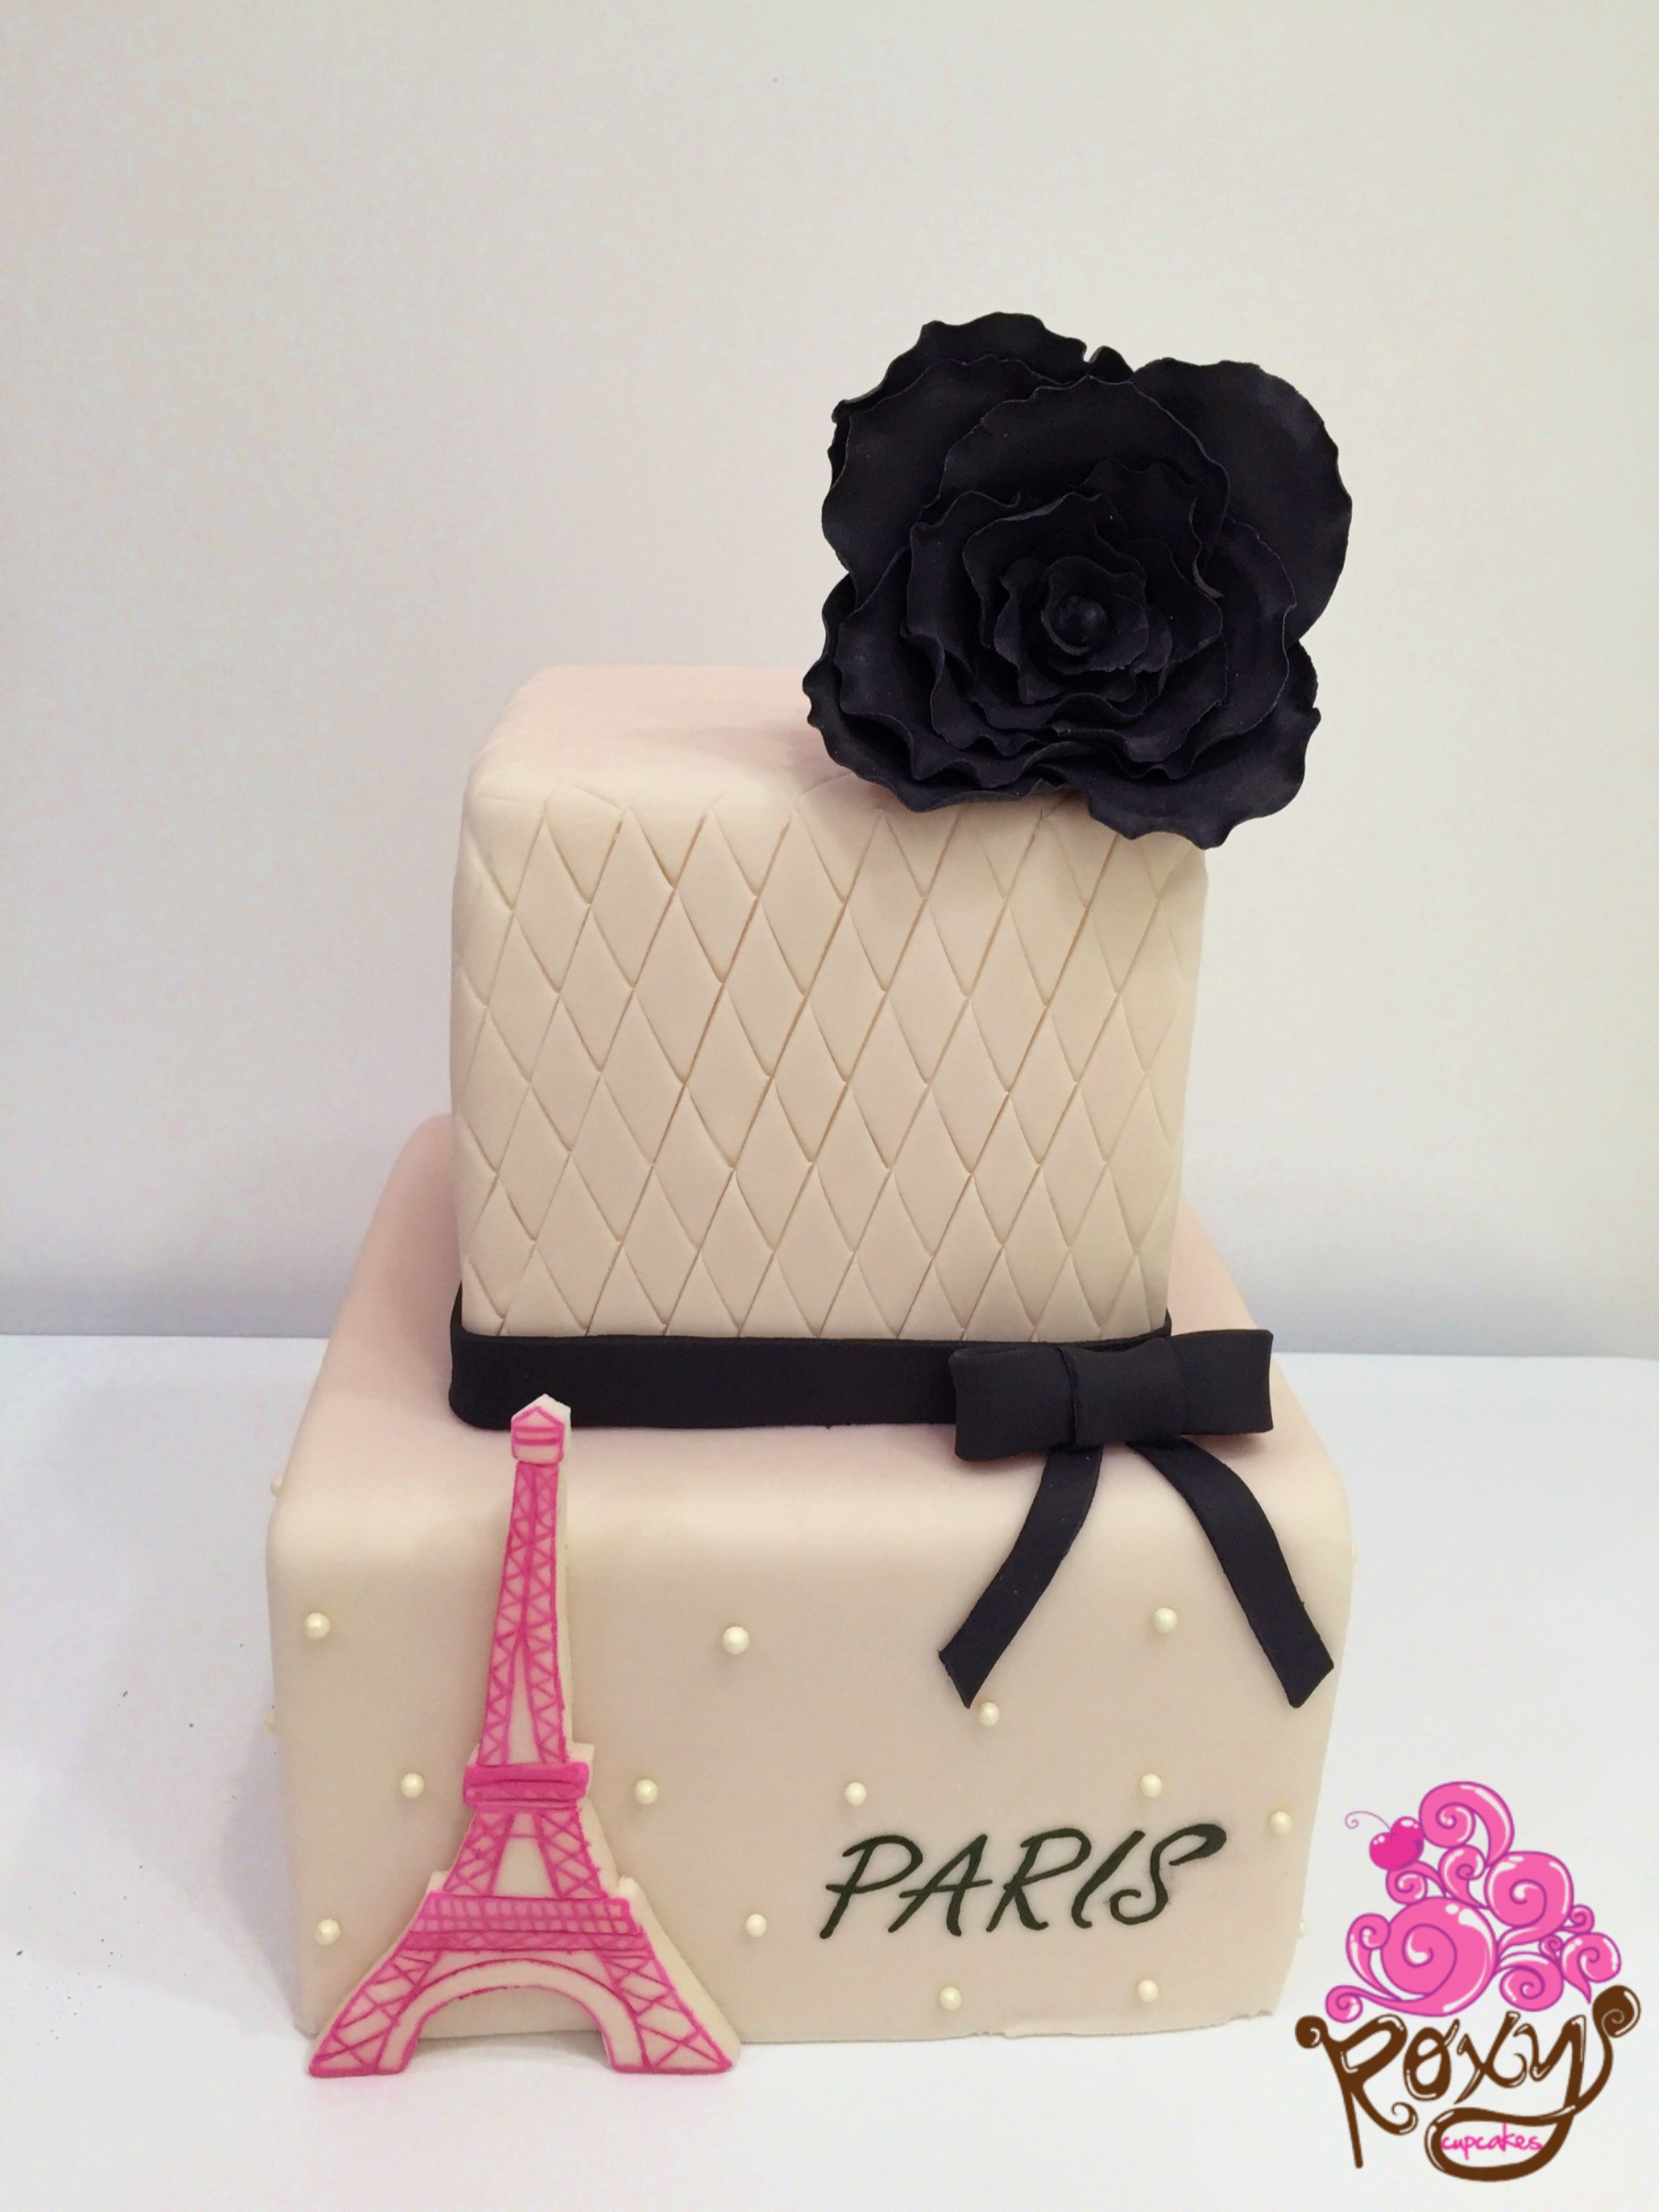 White and black Parisian fondant birthday cake